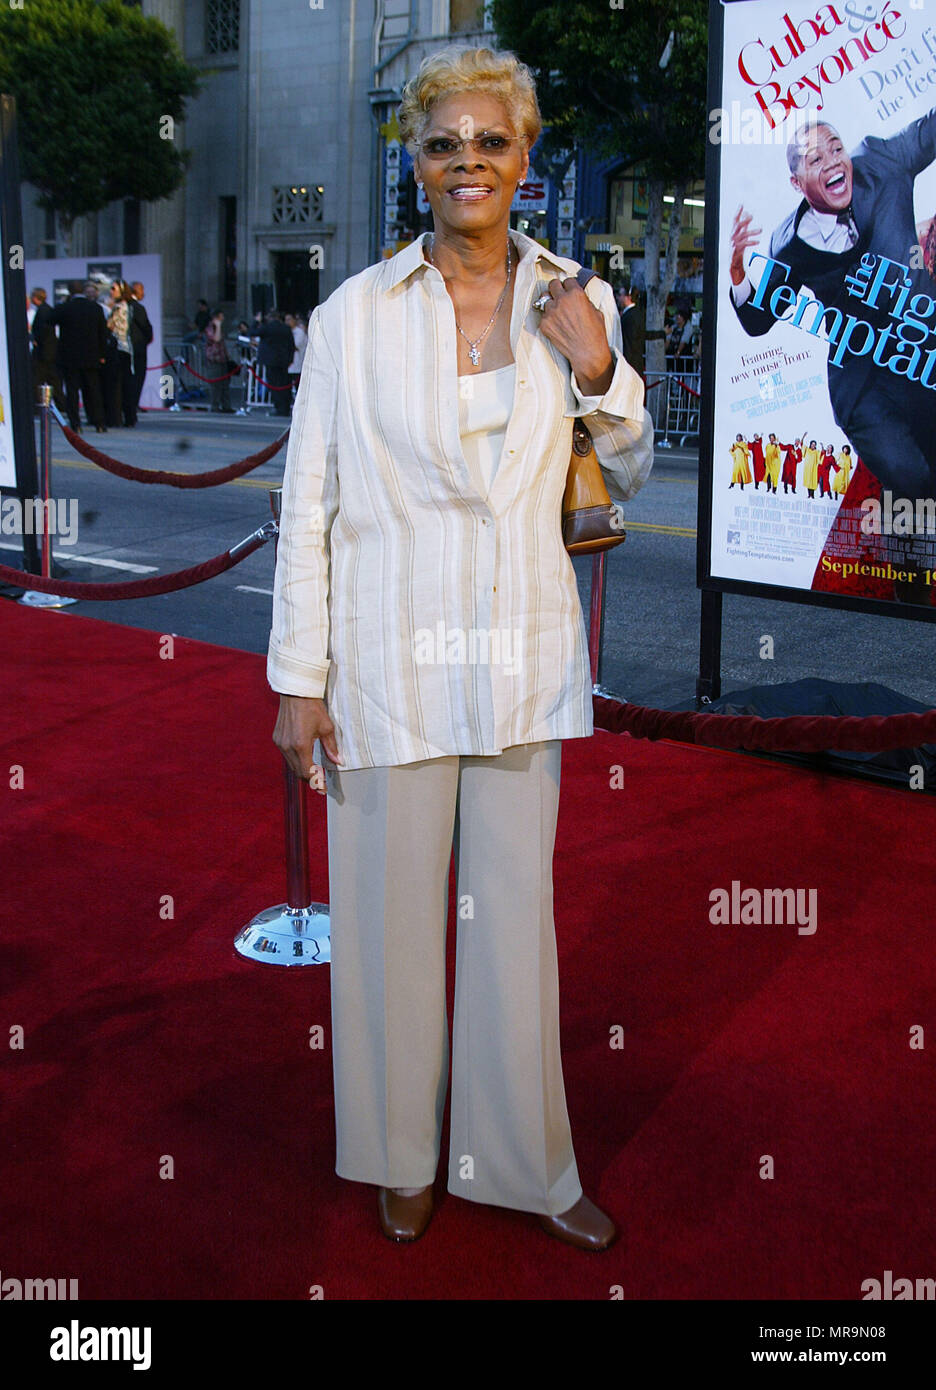 Dionne Warwick arriving at the Premiere of